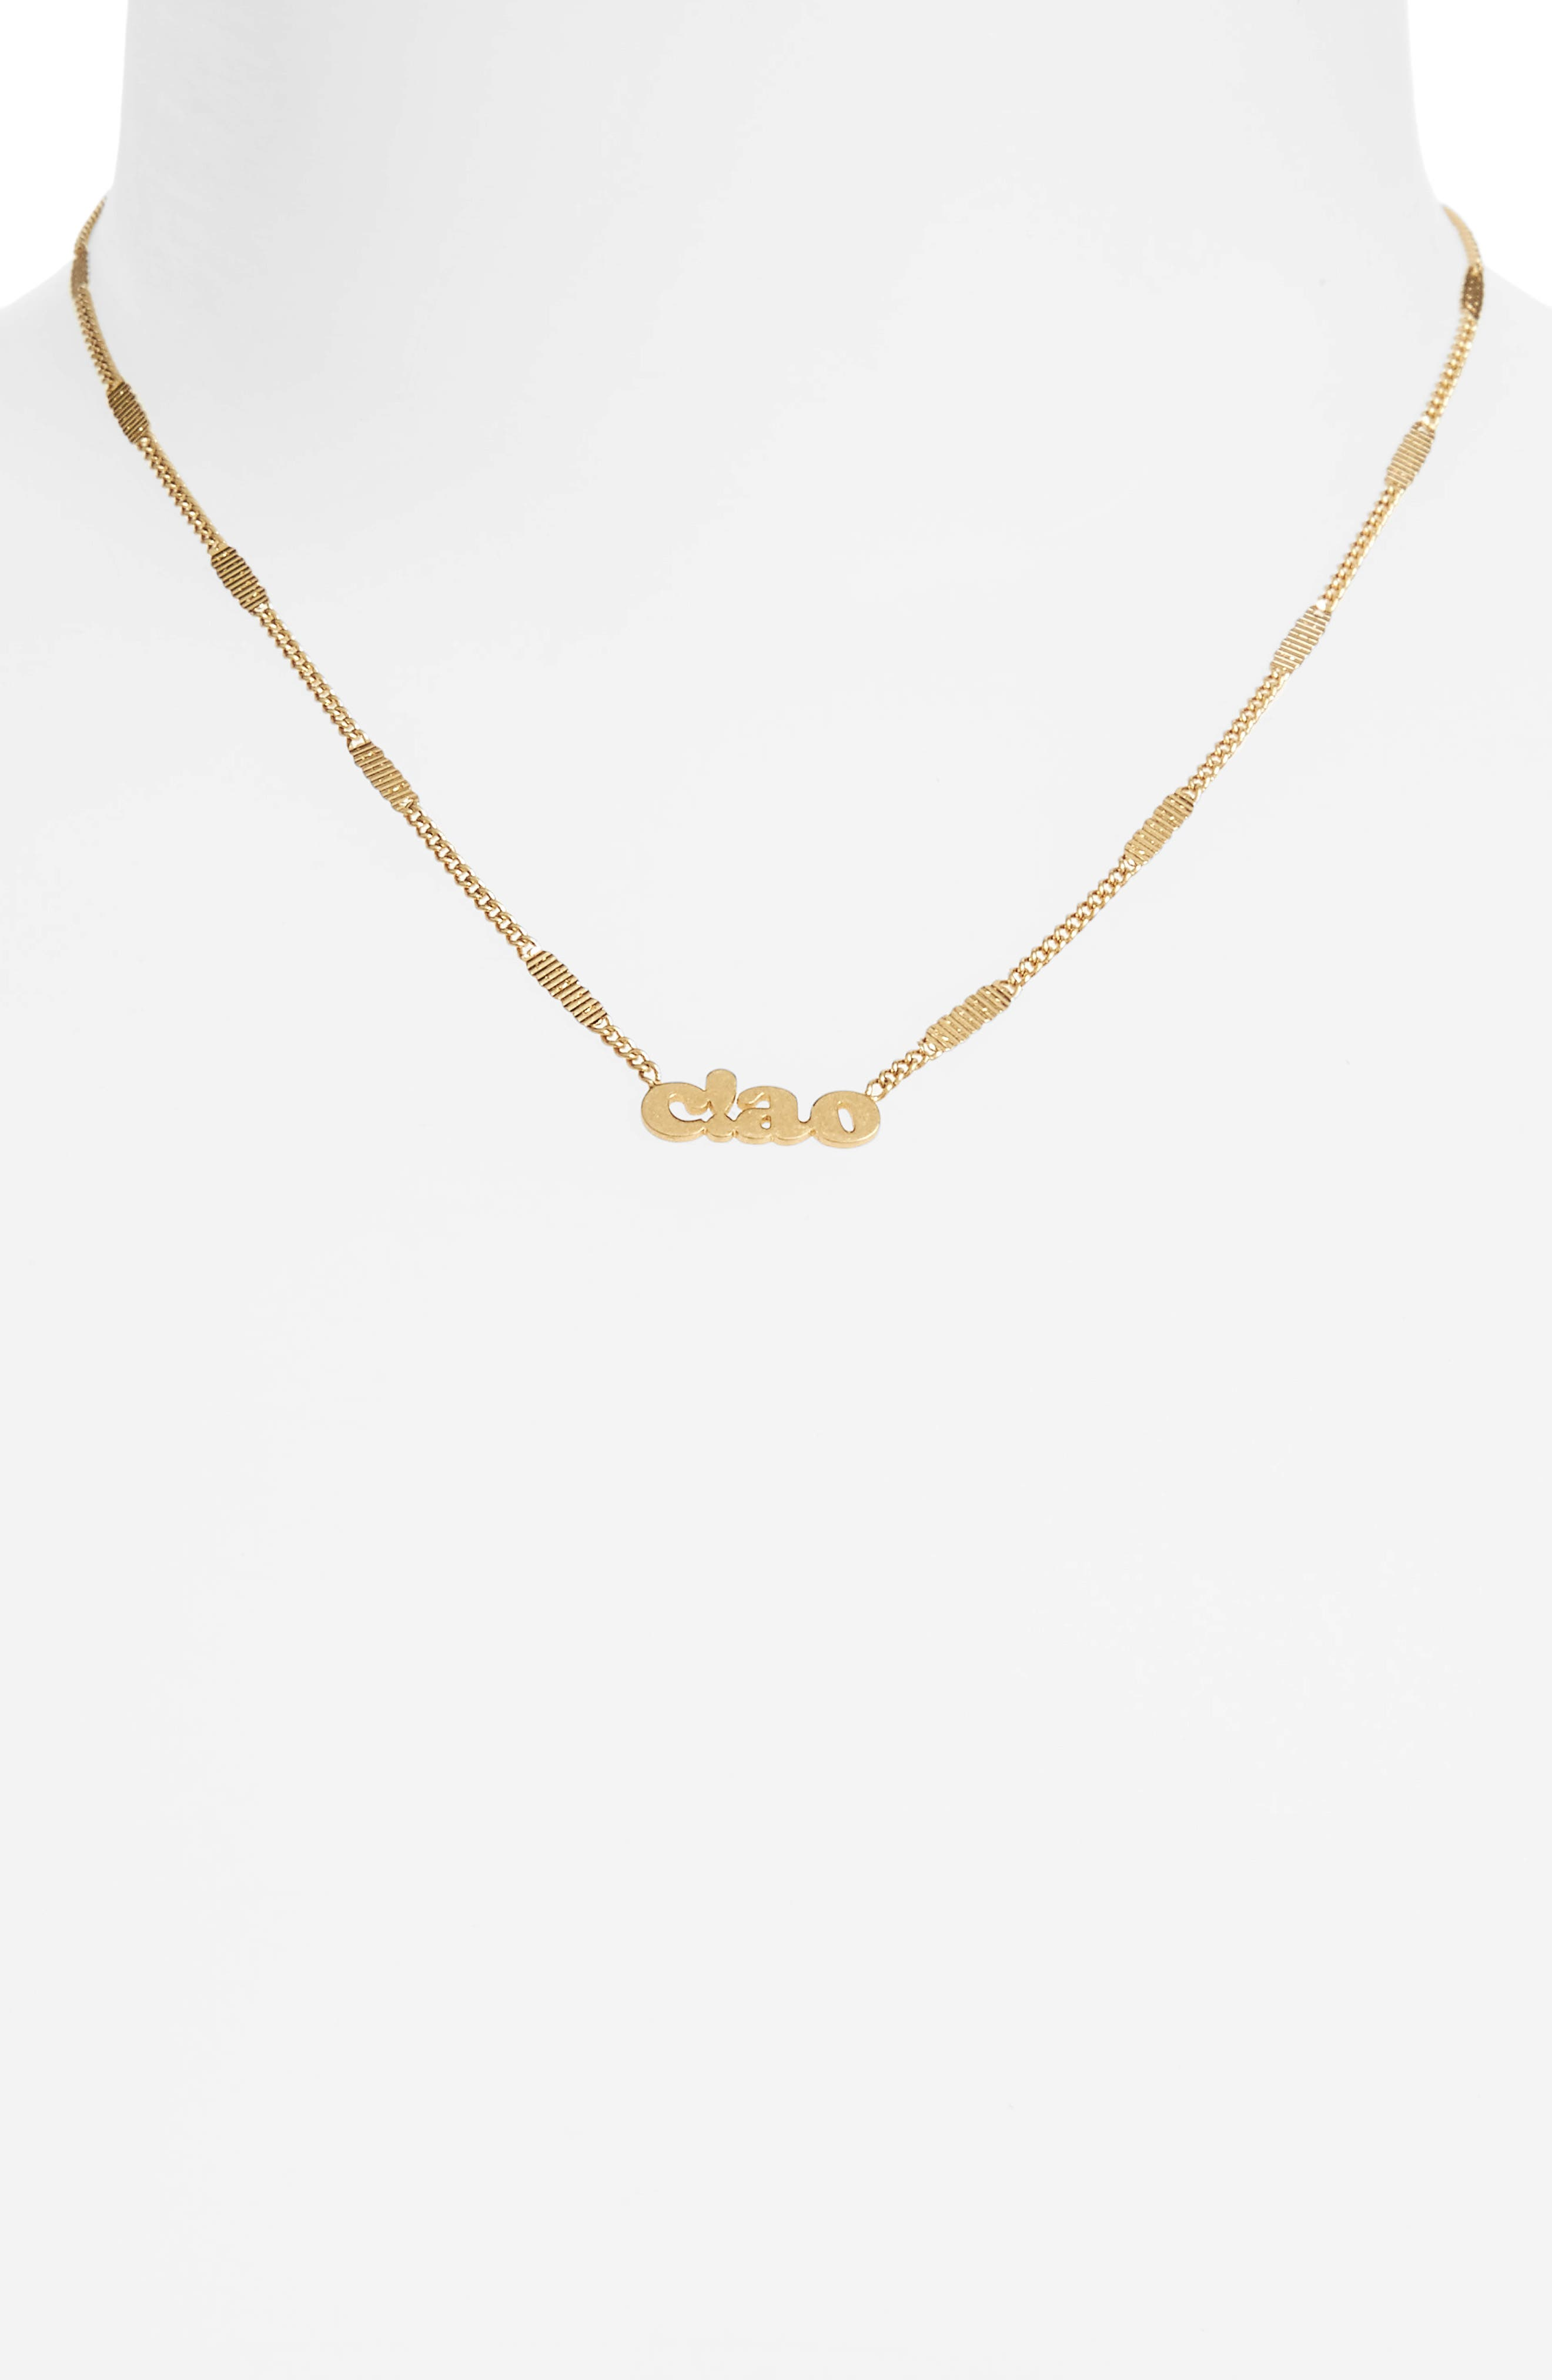 Madewell Ciao Necklace